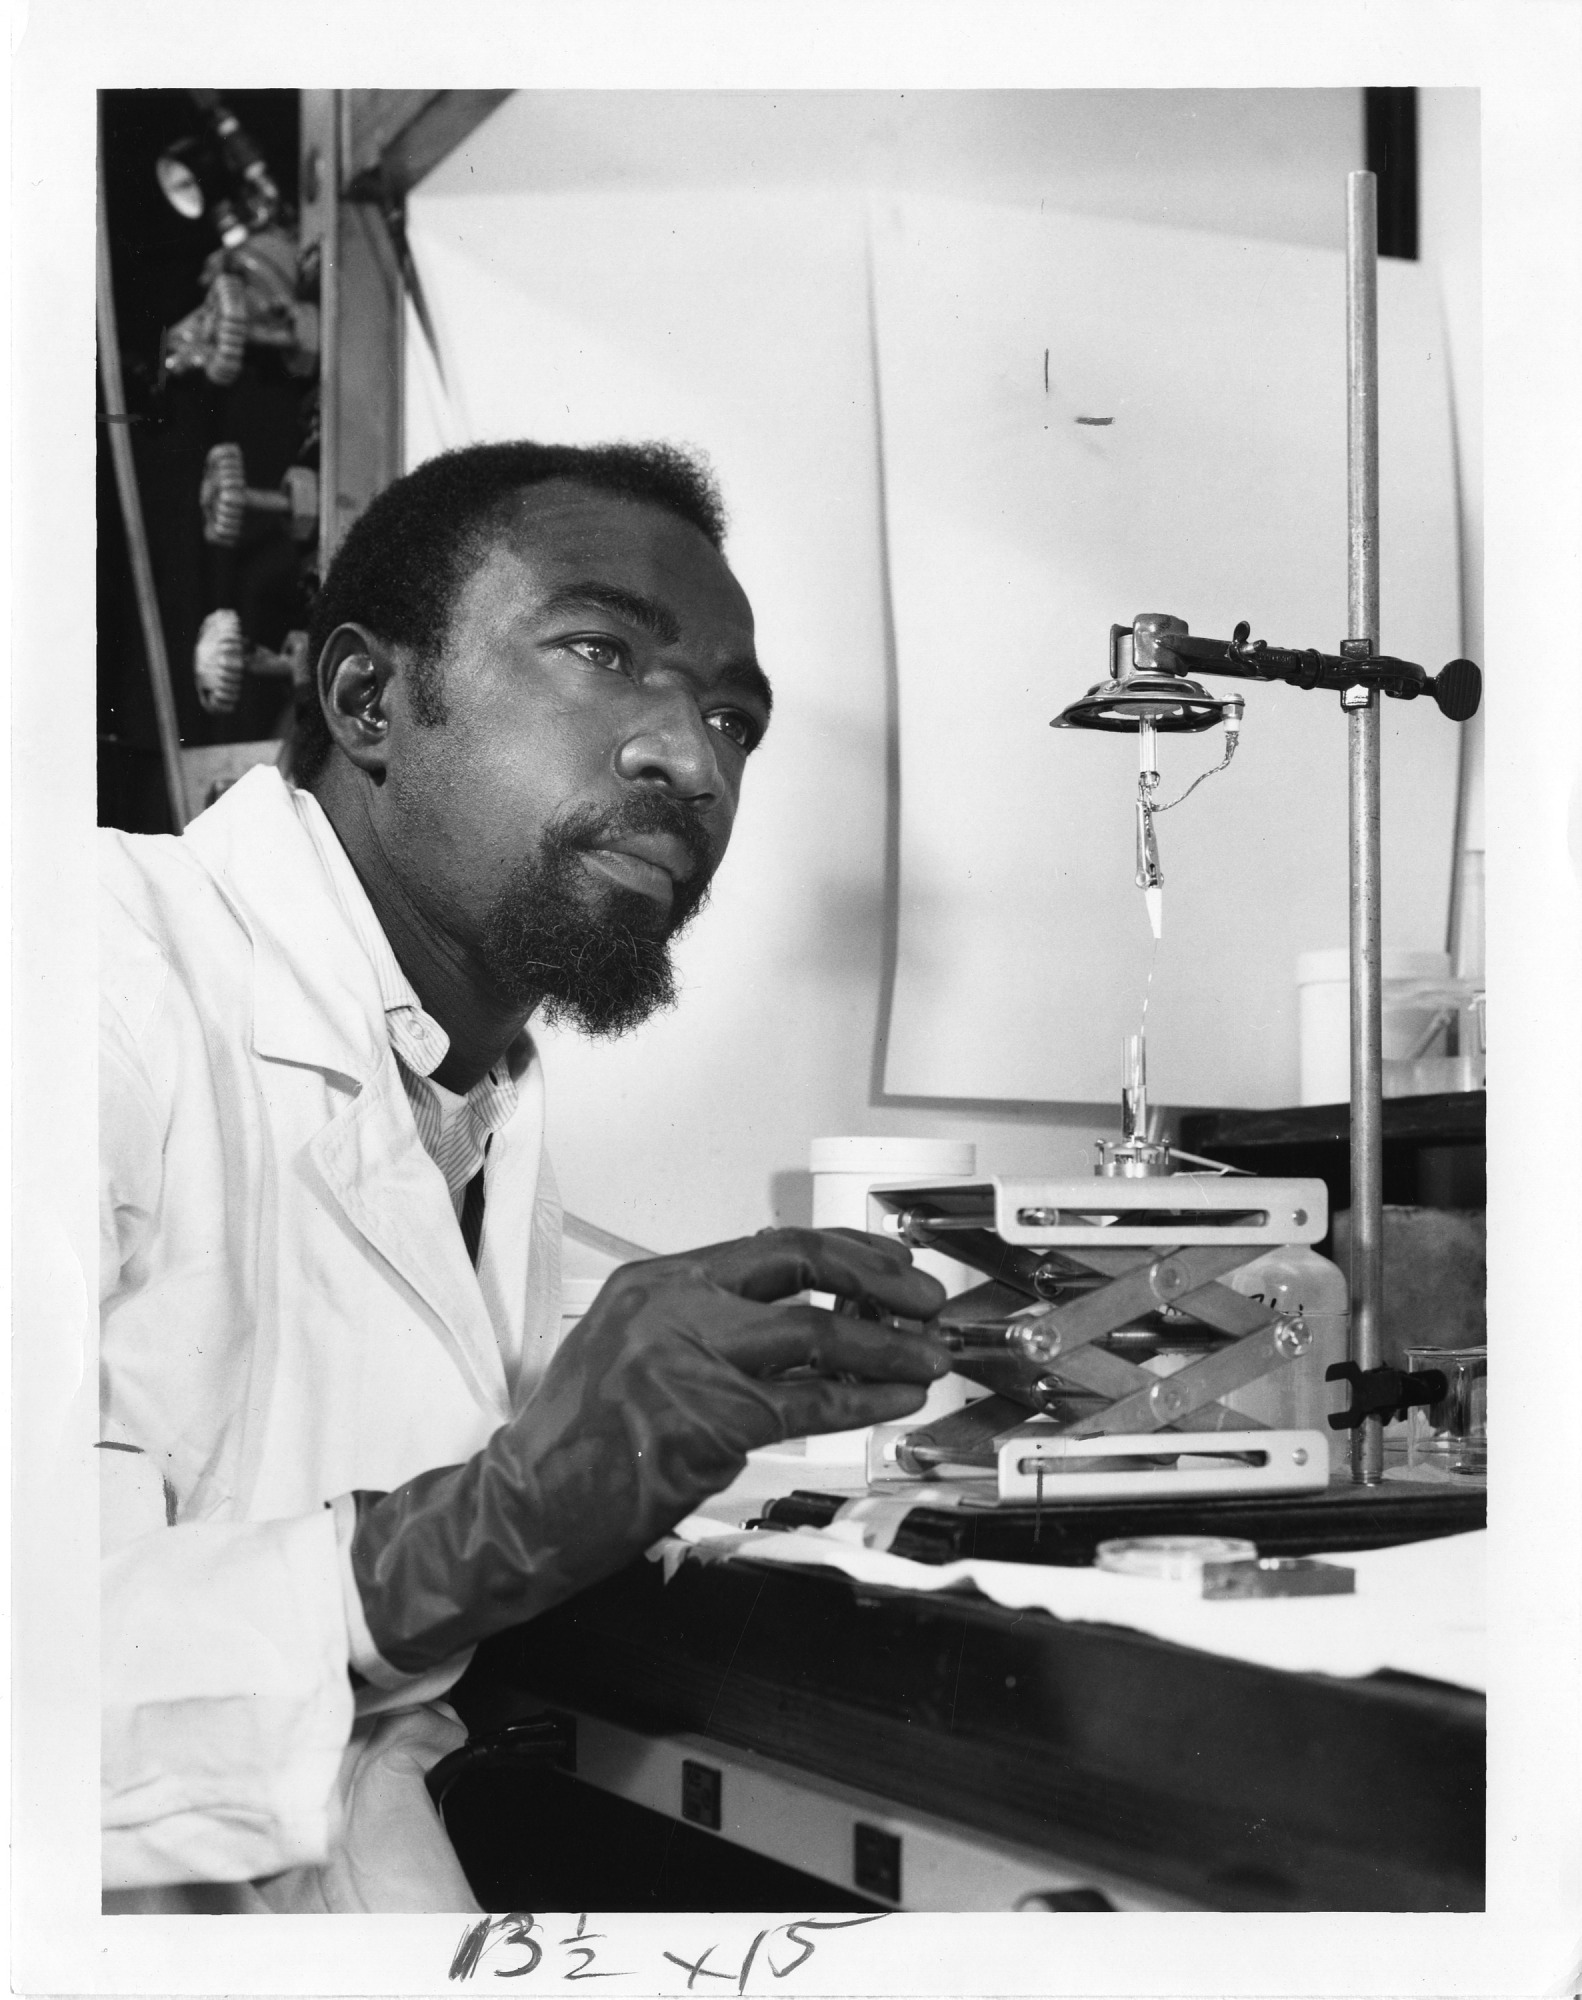 James Andrew Harris, 1969, 1969, Smithsonian Institution Archives, SIA Acc. 90-105 [SIA2008-3327].